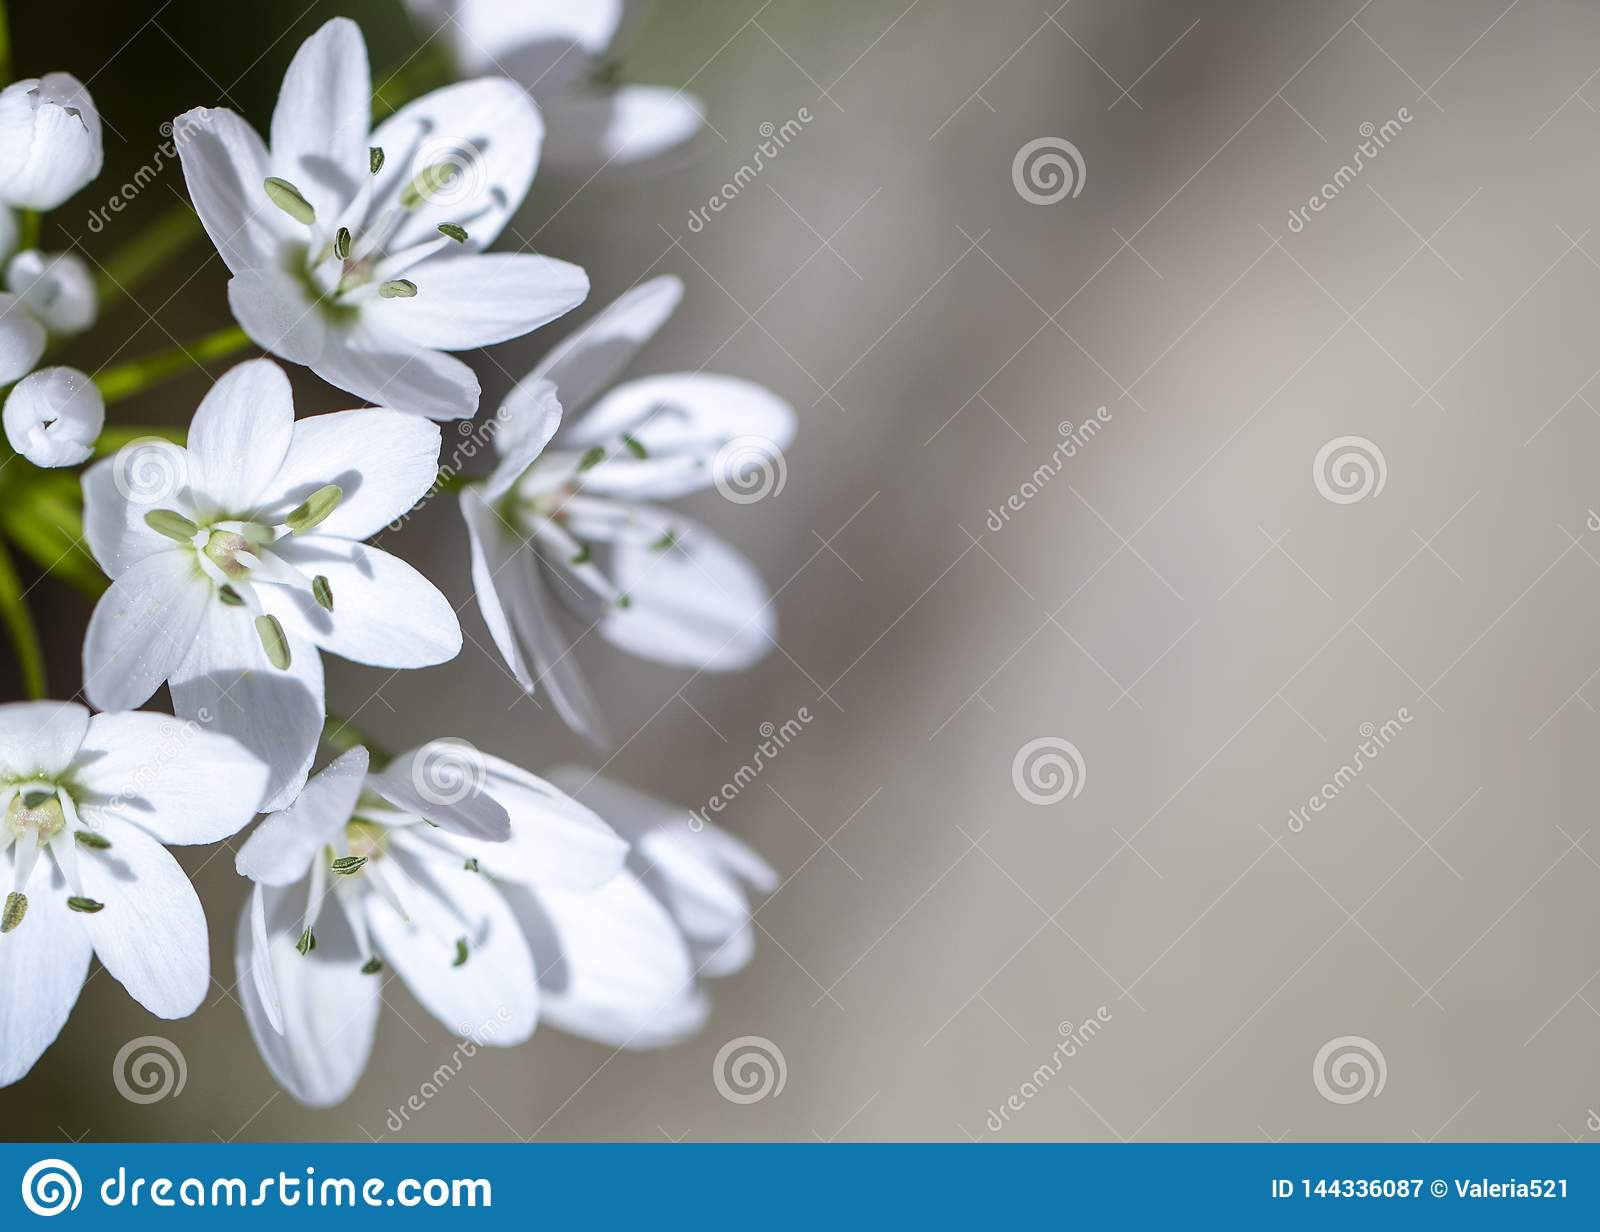 Small white spring flowers